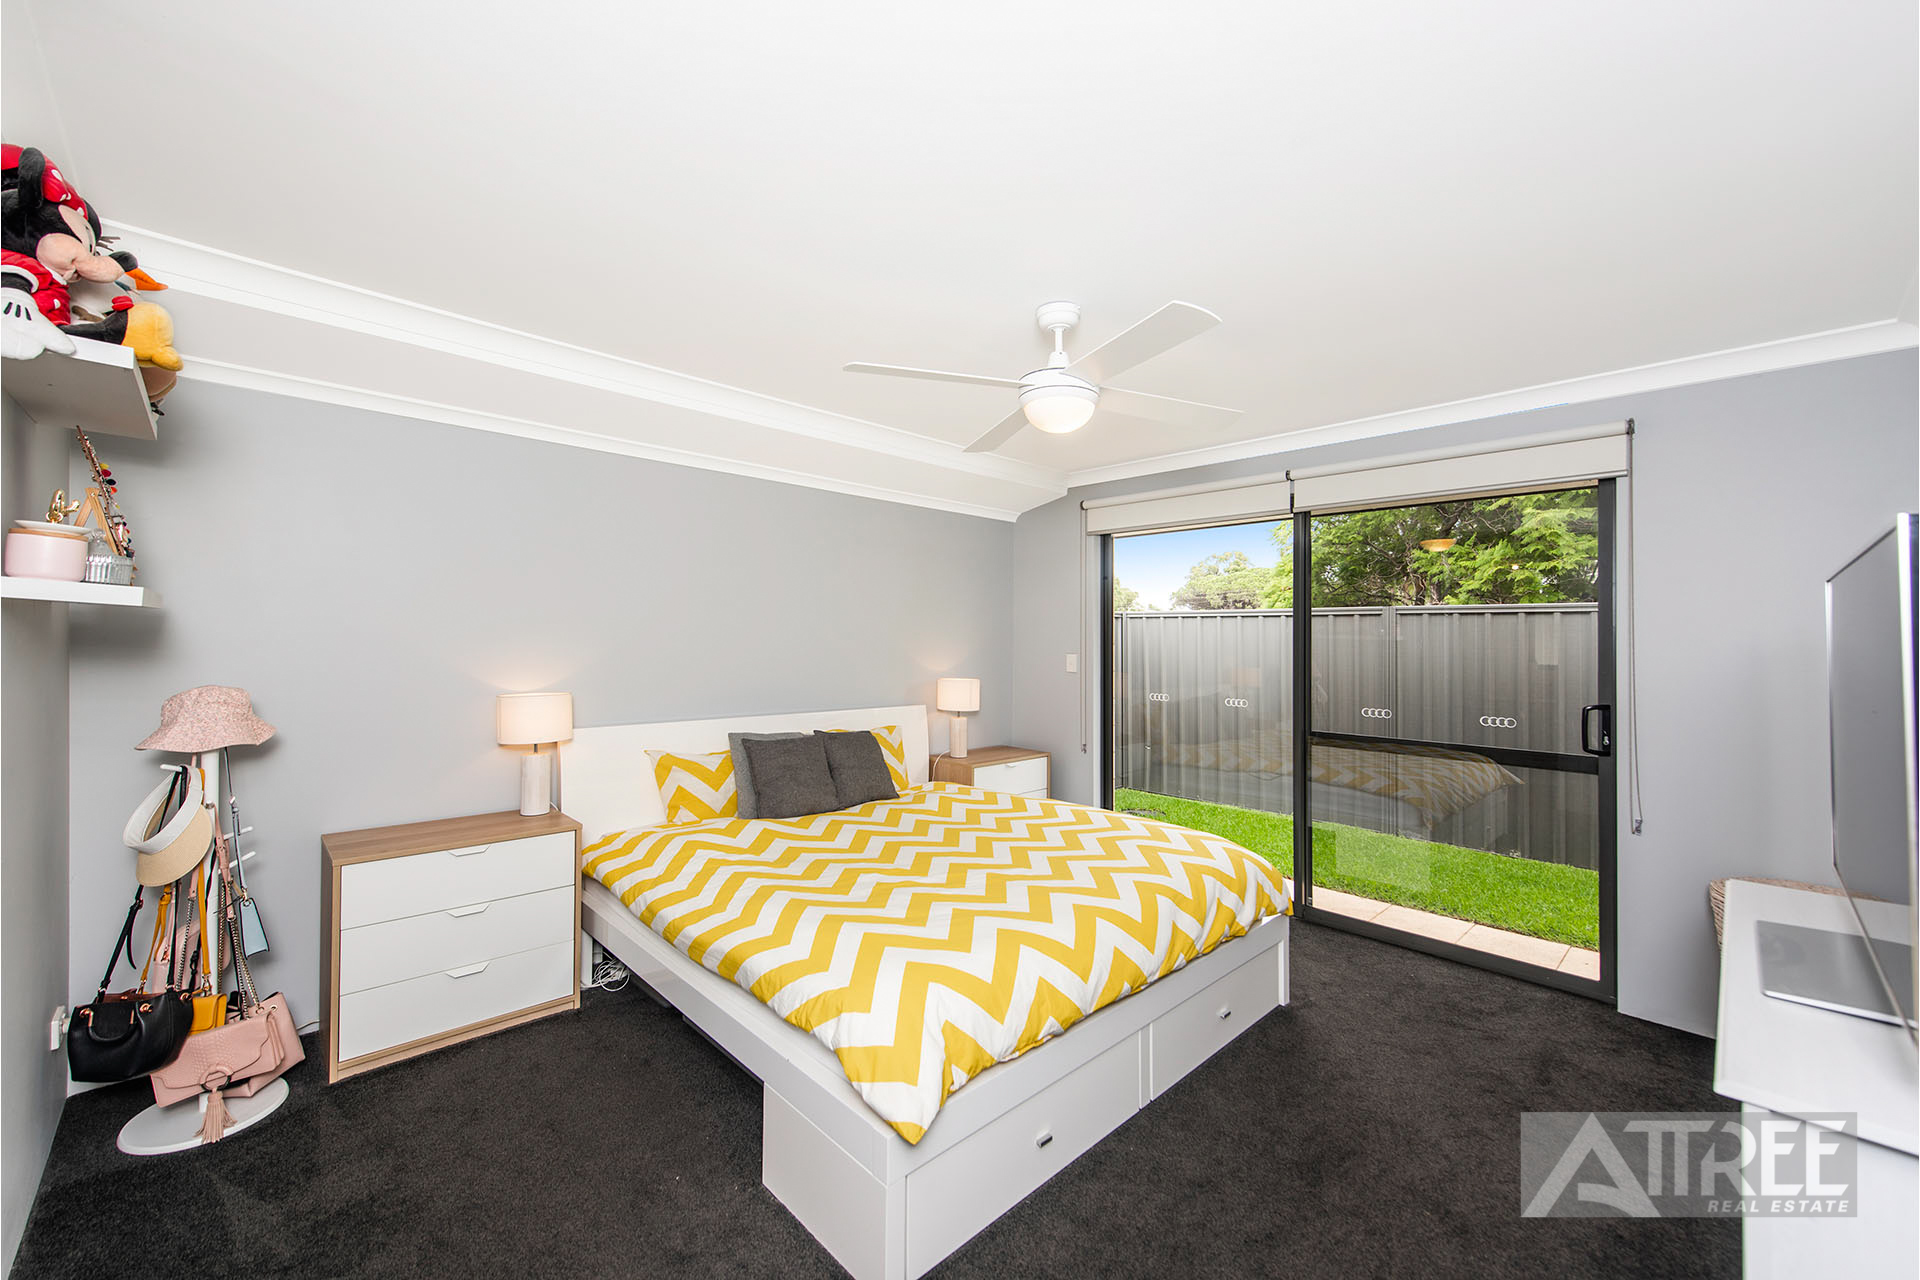 Property for sale in SPEARWOOD, 45a Doolette Street : Attree Real Estate